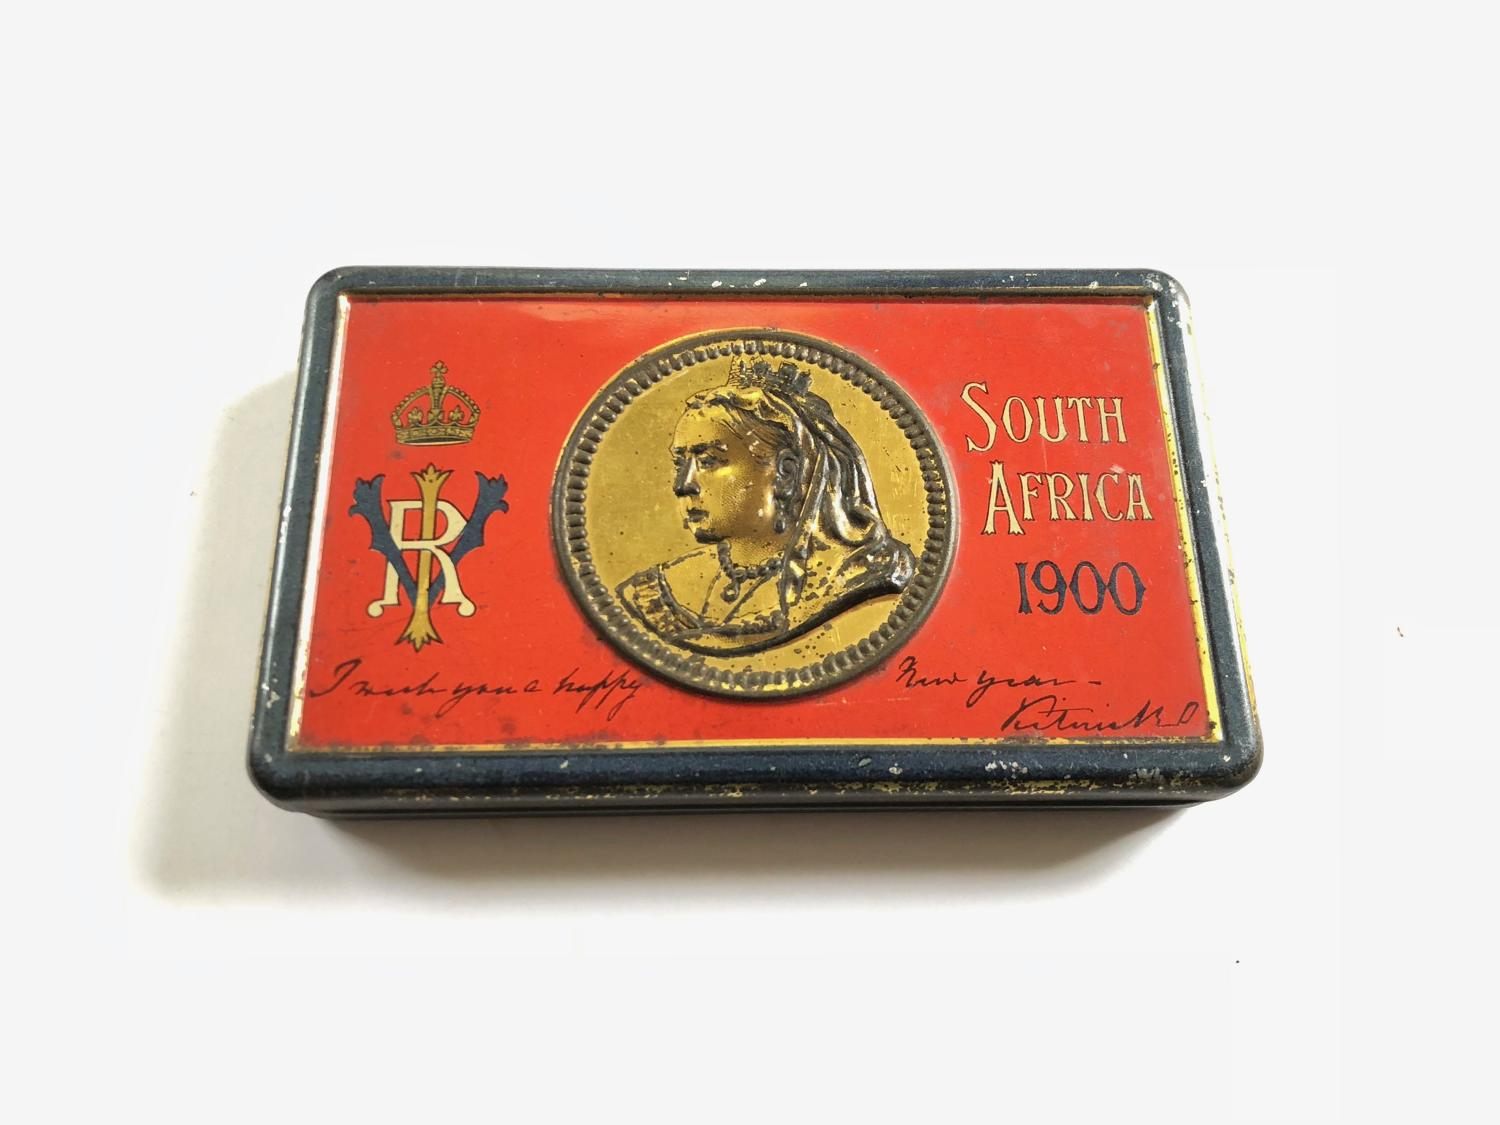 Boer War South Africa 1900 Queen Victoria Chocolate Tin